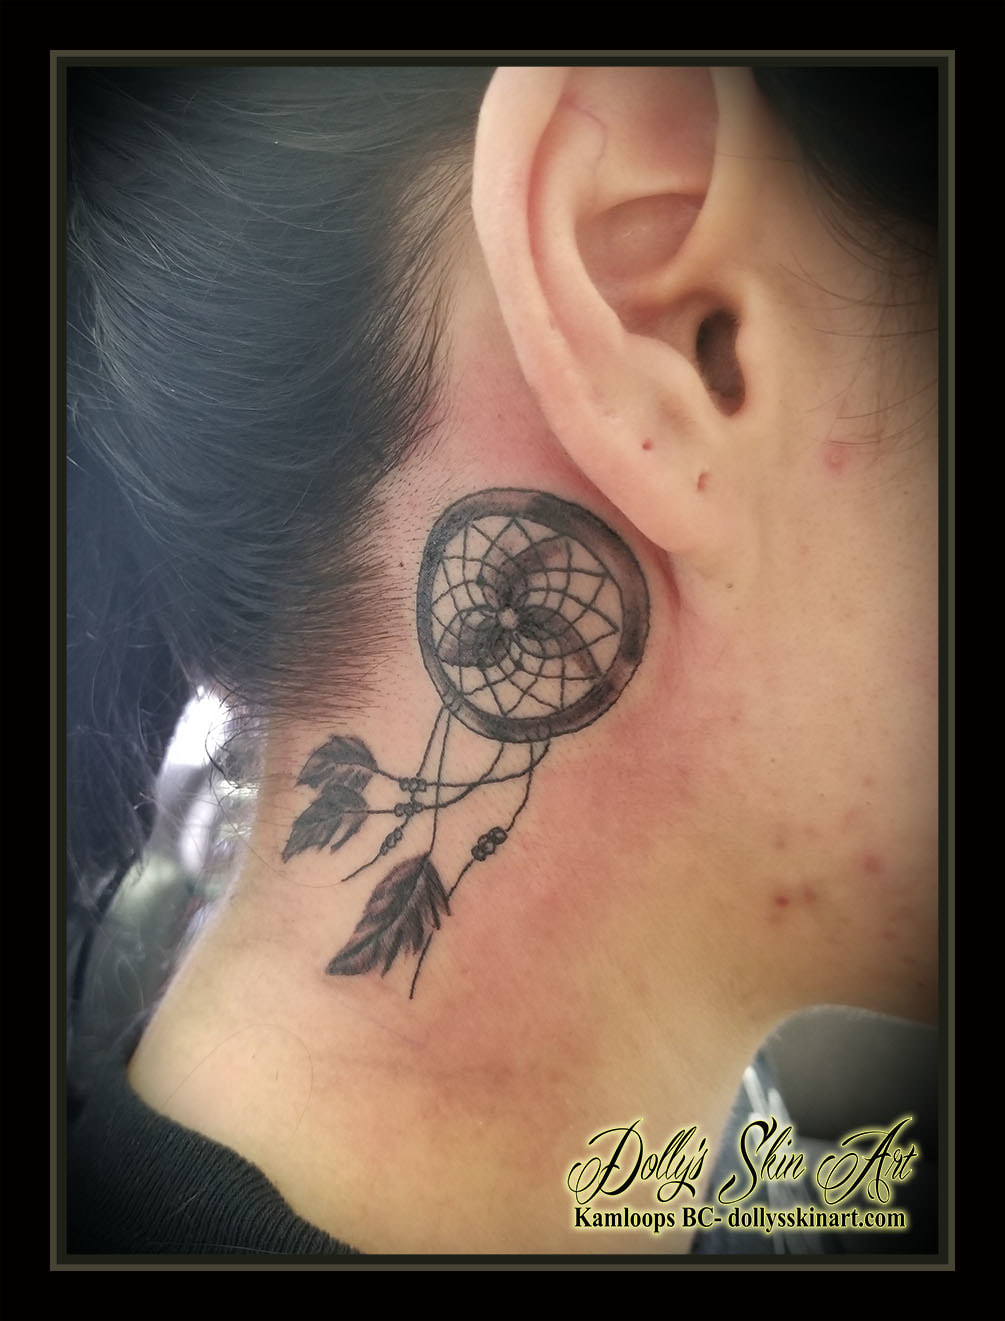 black and grey dreamcatcher behind ear feathers shaded small simple tattoo kamloops dolly's skin art